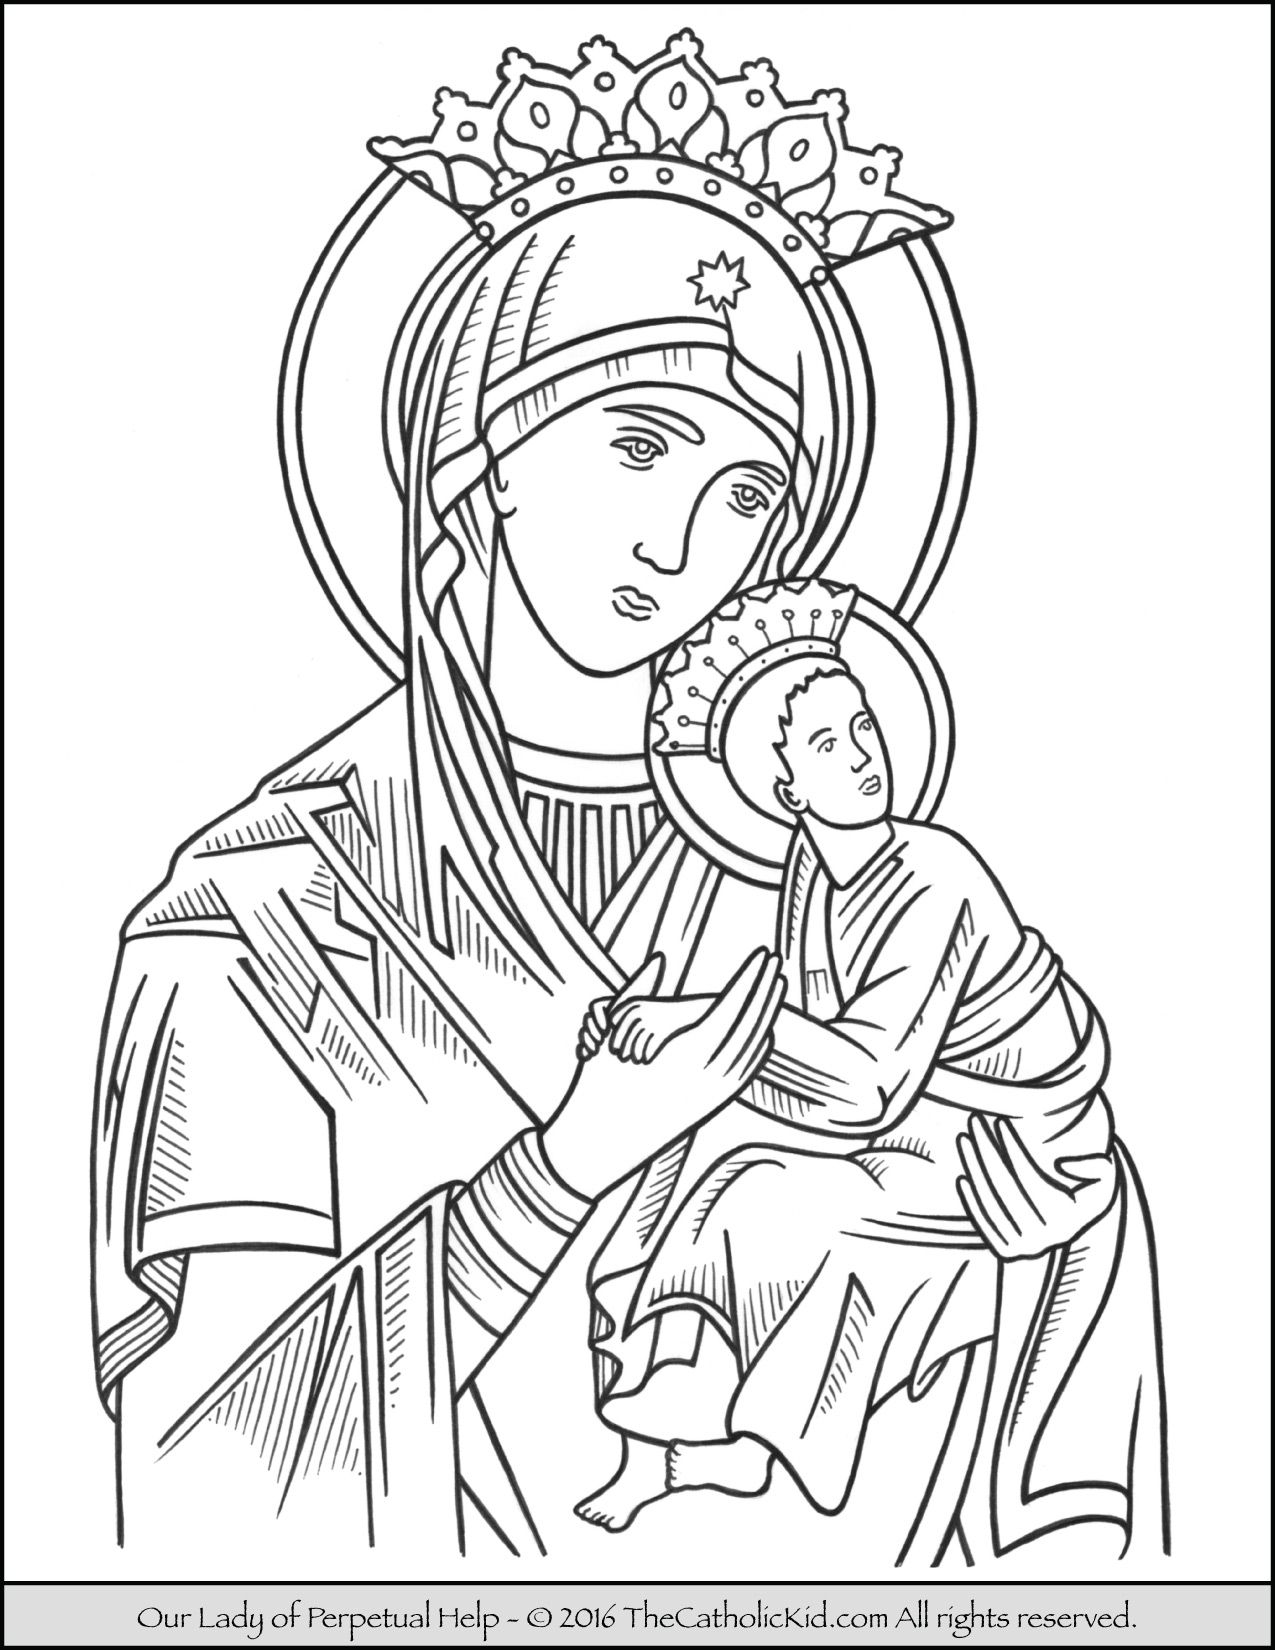 Pin By Krito Graphic On Szkic Catholic Coloring Coloring Pages Saint Coloring